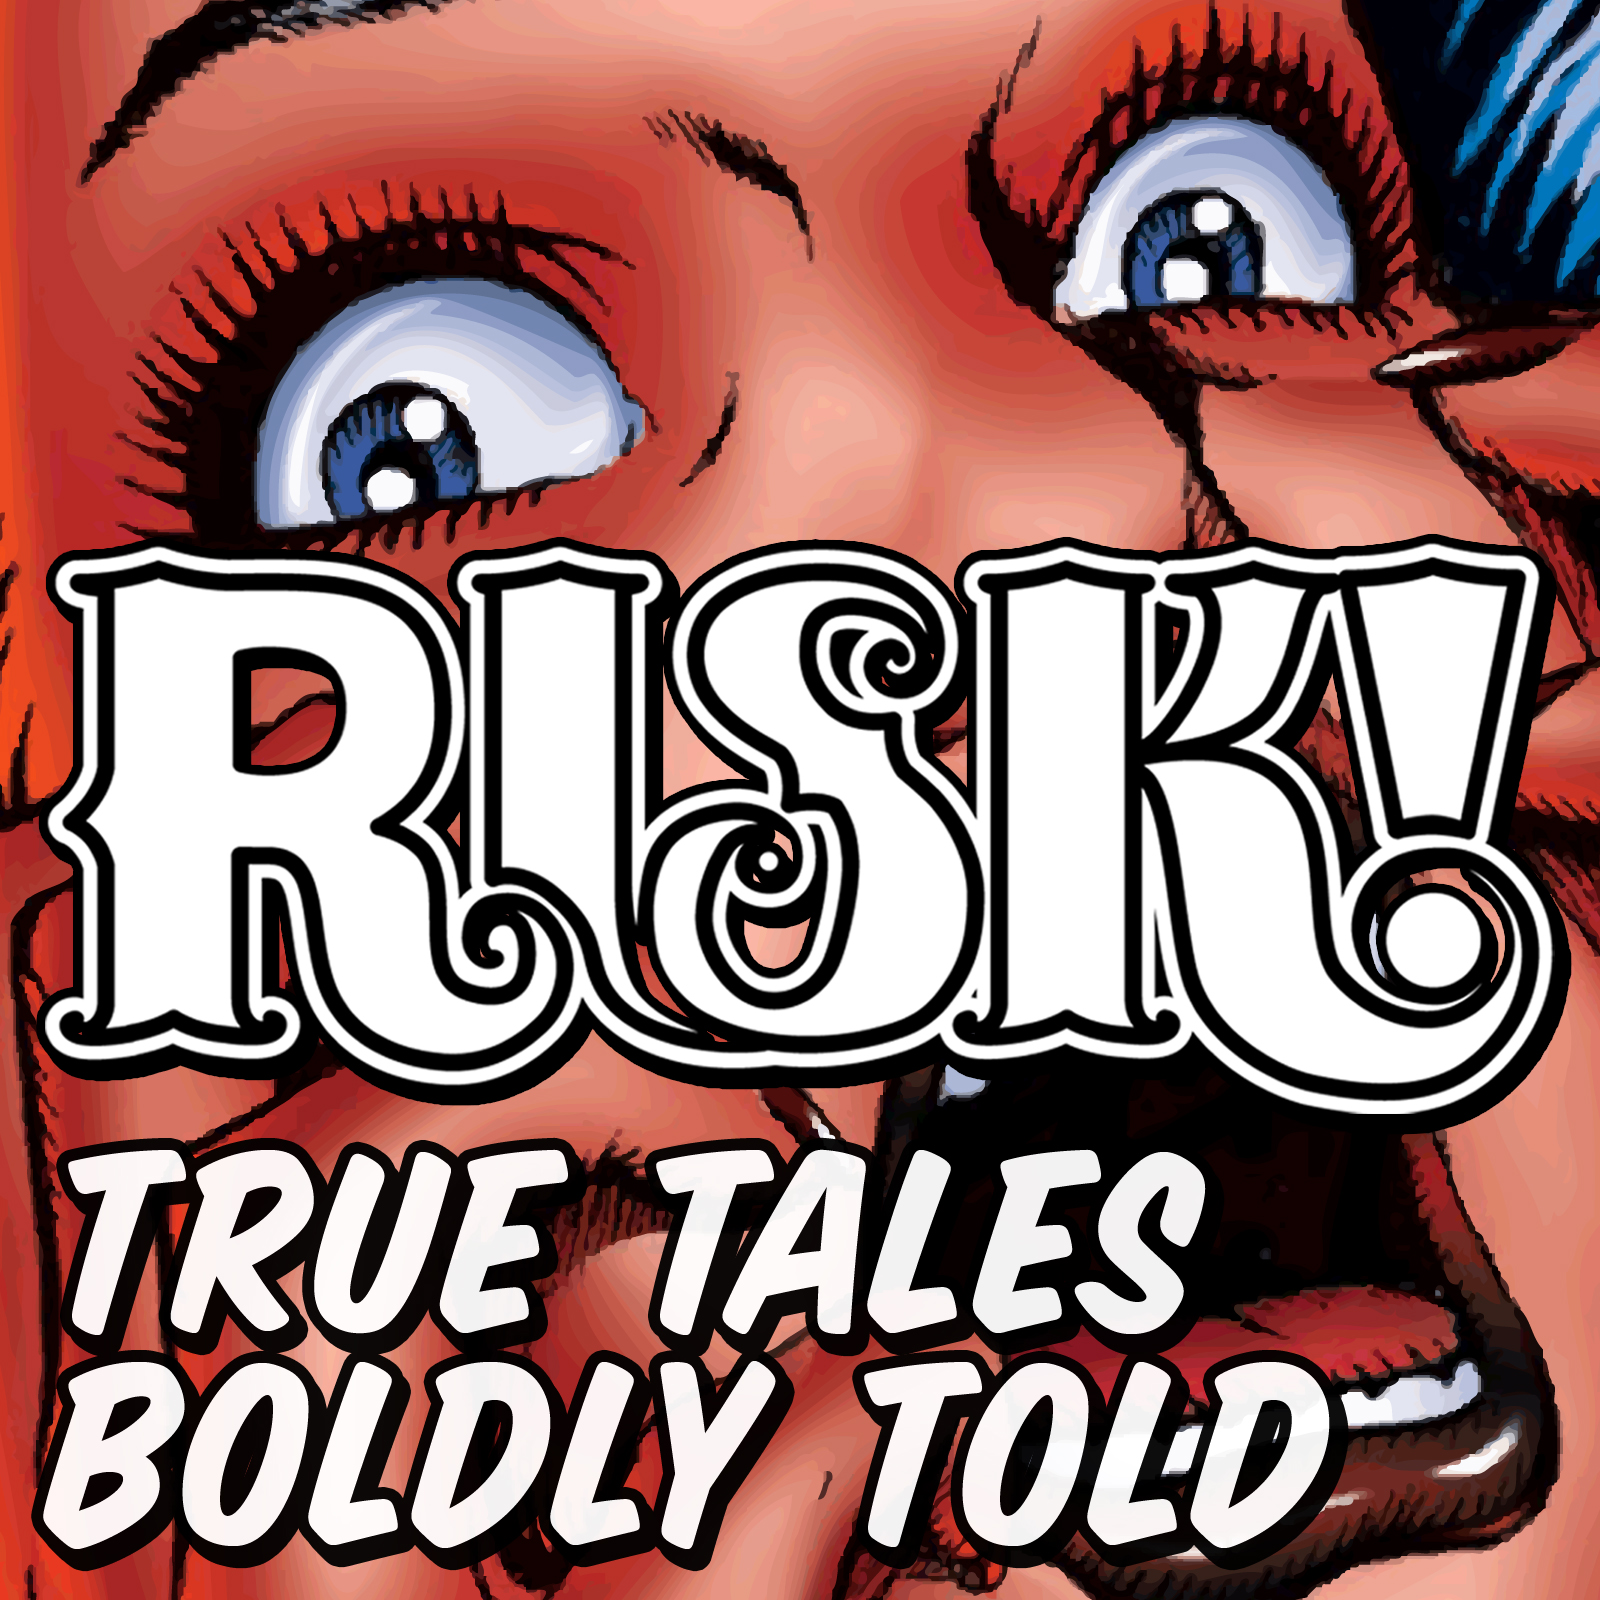 RISK-LOGO-BANNER-CORRECT_medium.jpg